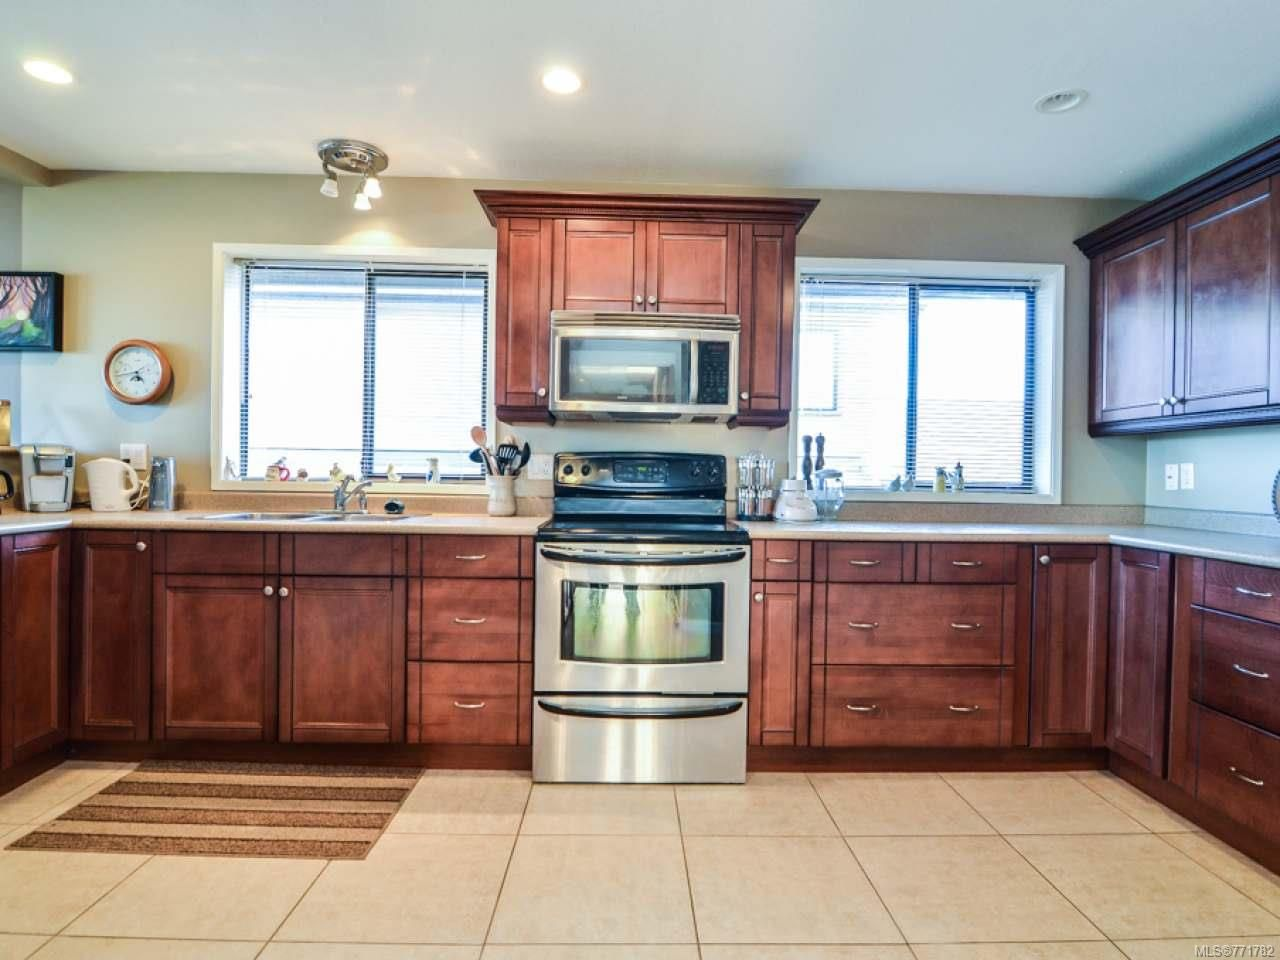 Photo 16: Photos: 451 S McLean St in CAMPBELL RIVER: CR Campbell River Central House for sale (Campbell River)  : MLS®# 771782